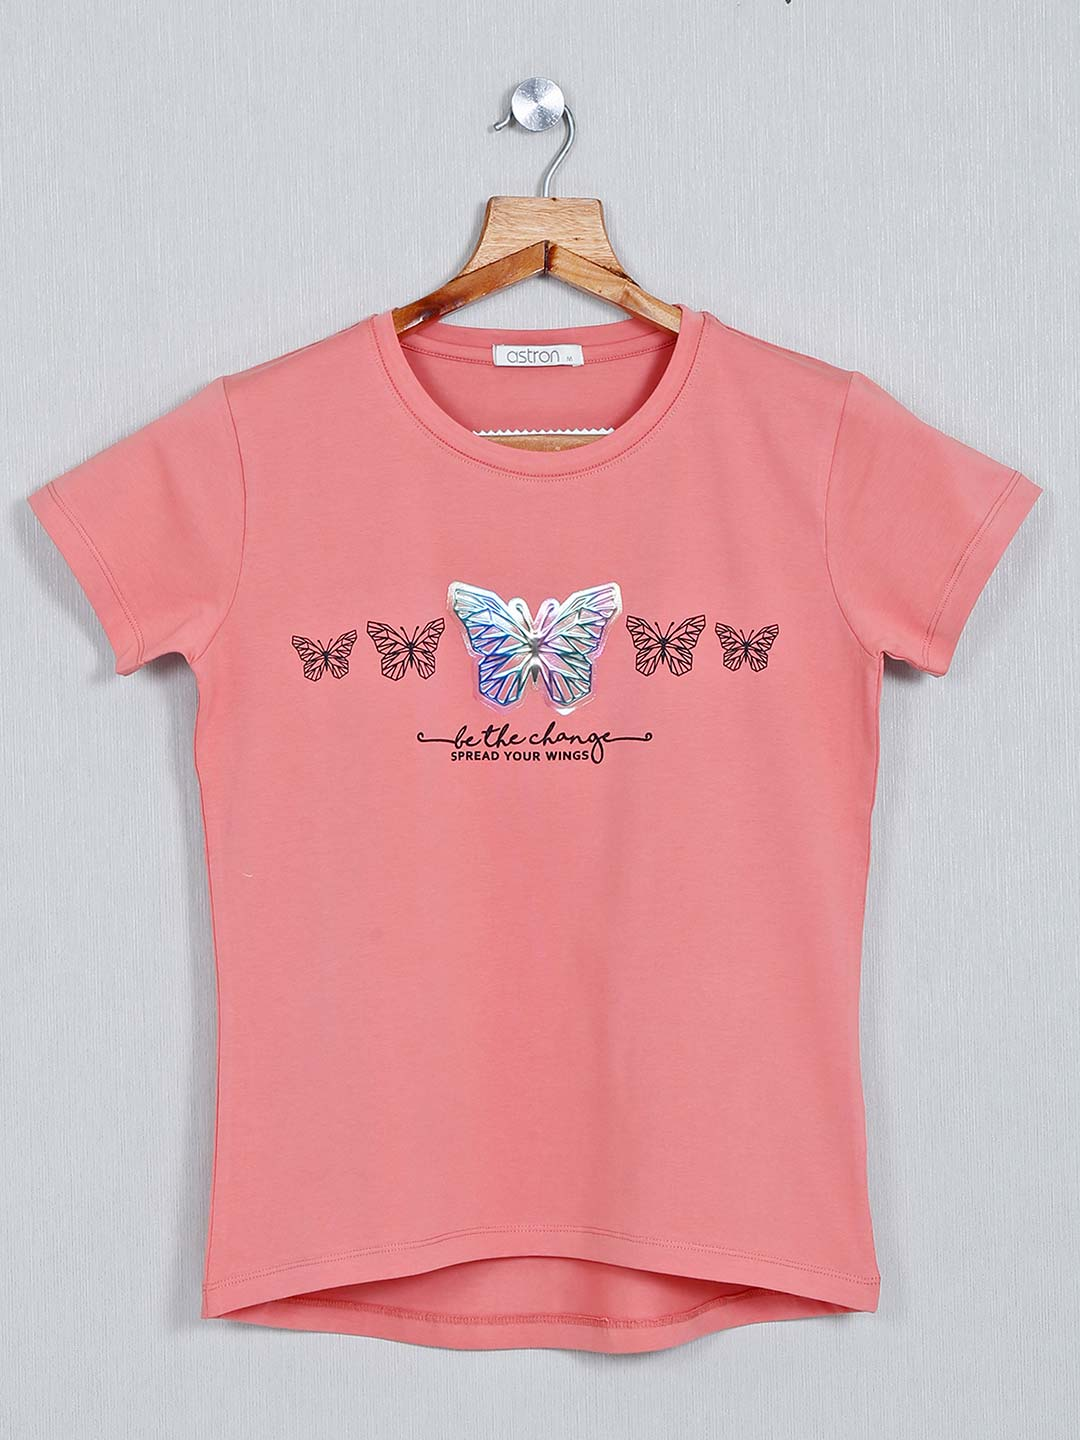 Astron Printed cotton peach casual top for women?imgeng=w_400